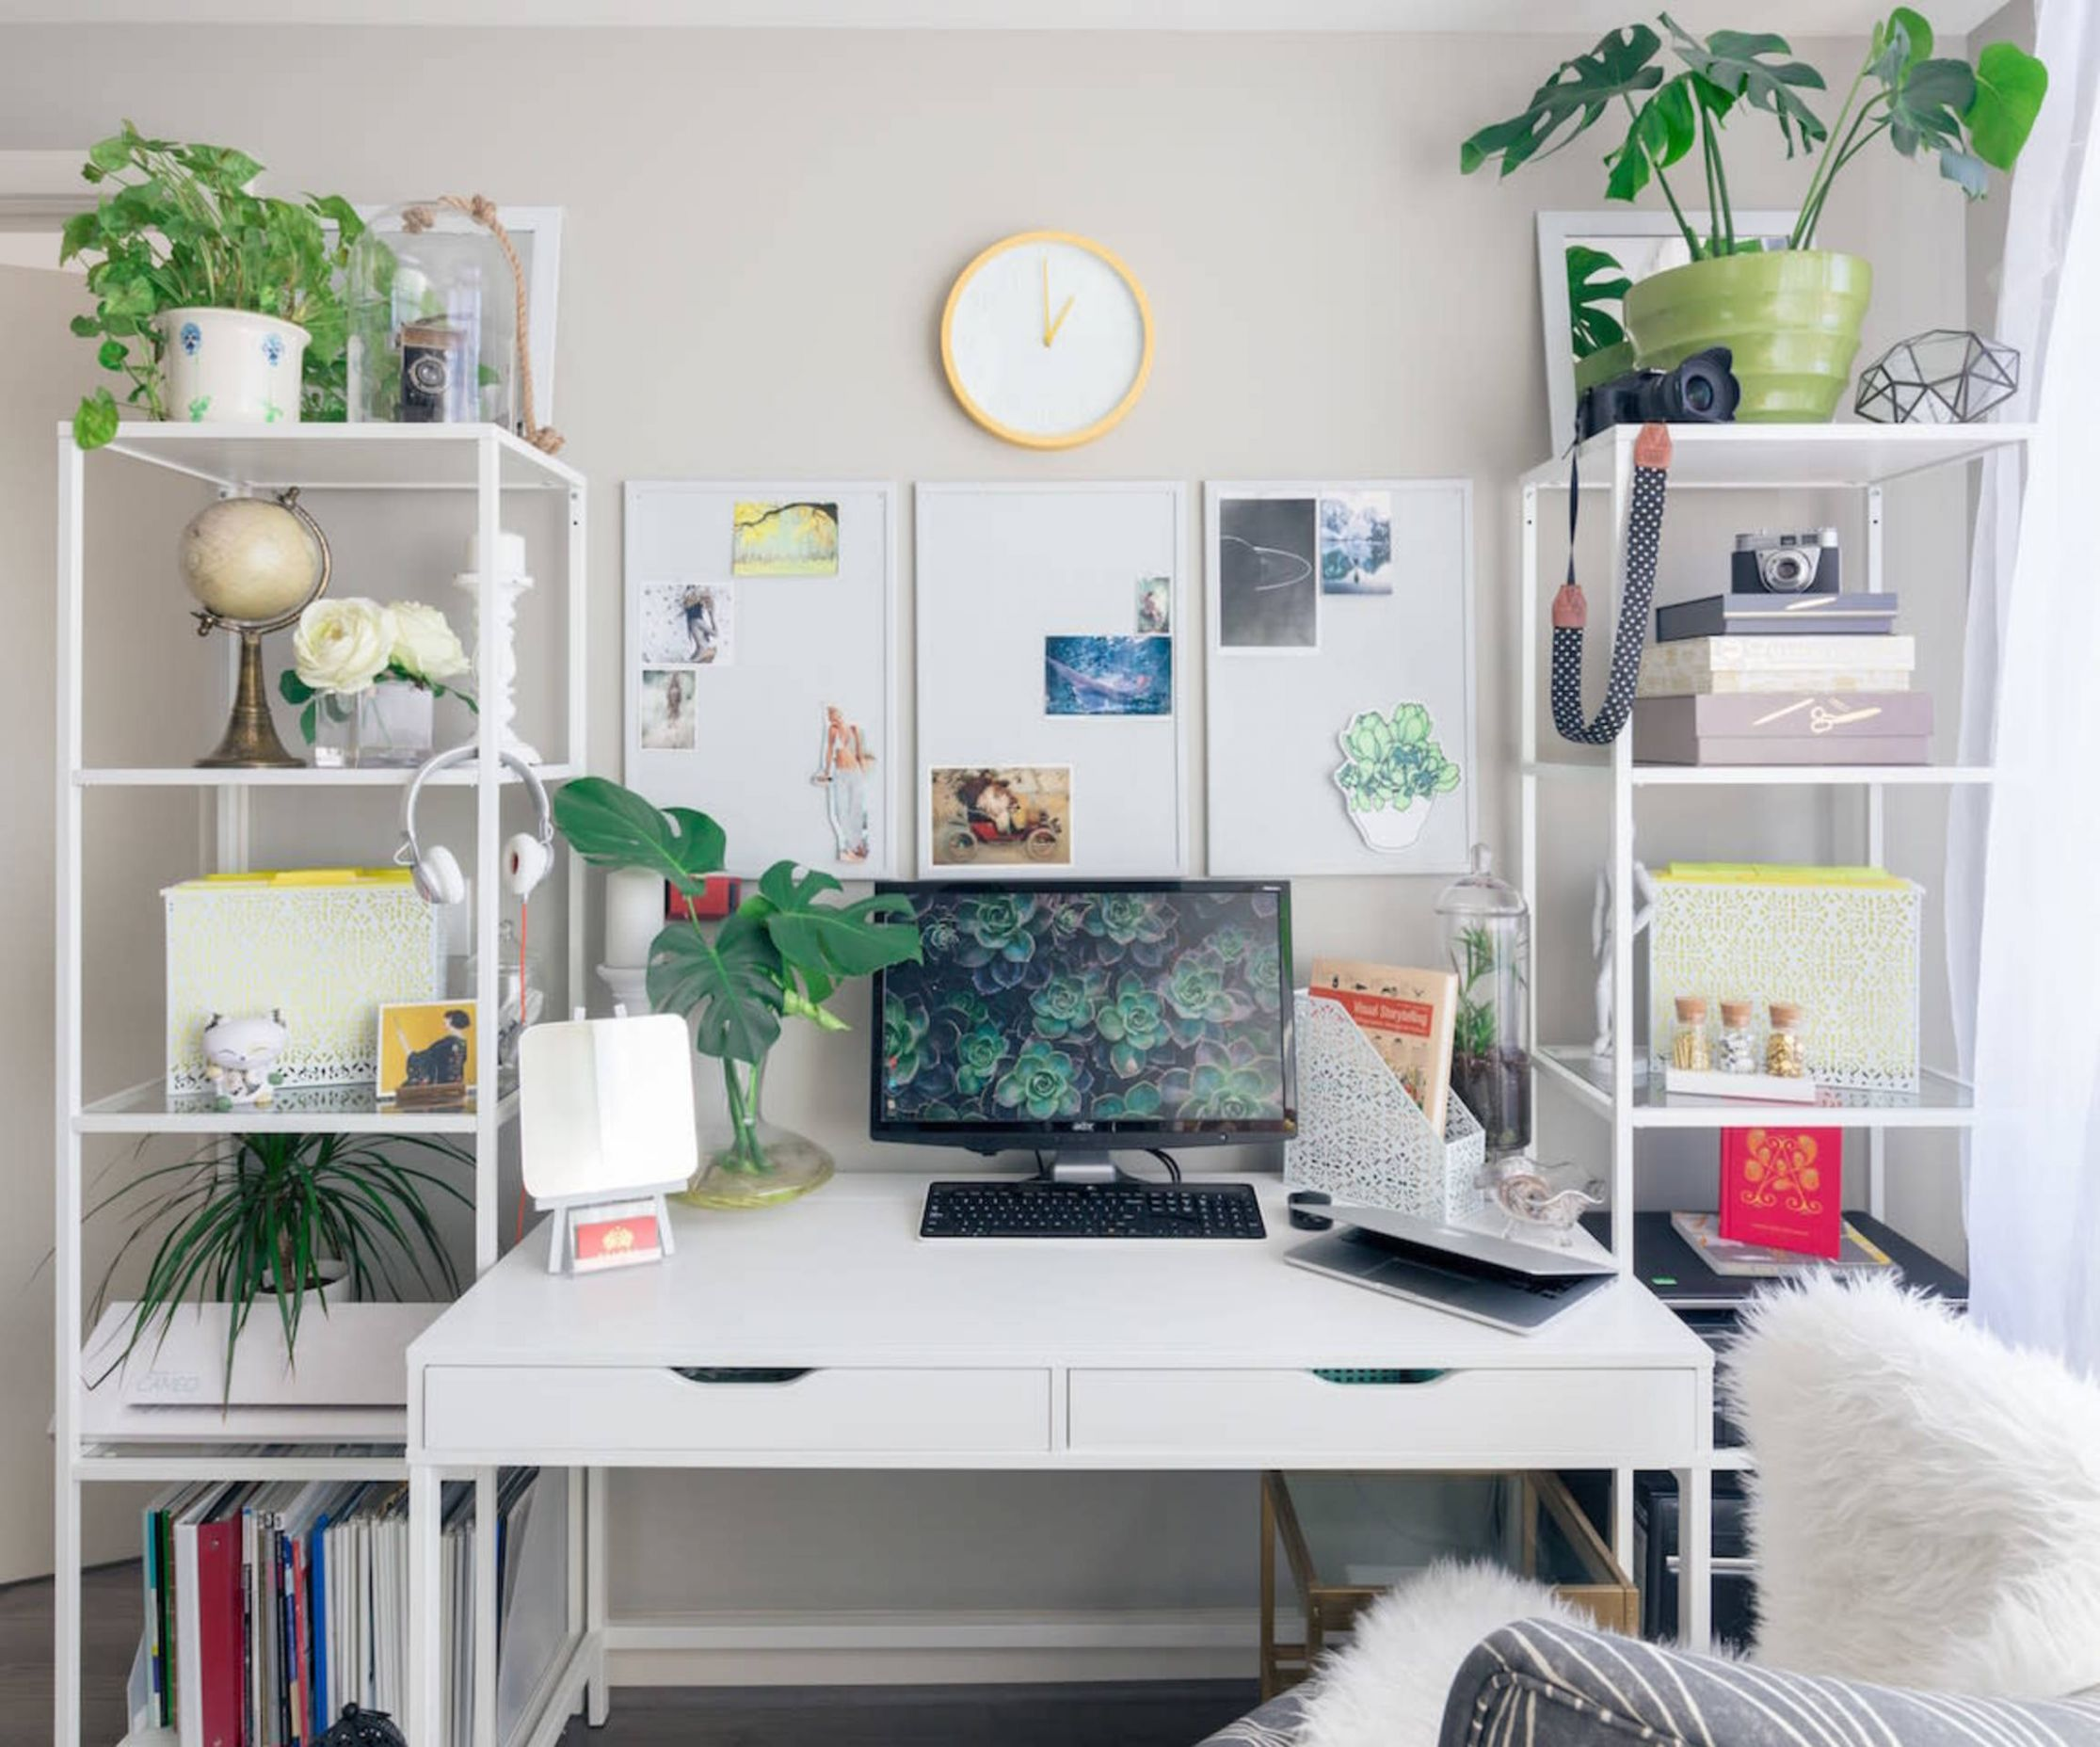 9 Home Office Ideas To Help You Work From Home Like A Boss - home office ideas for her